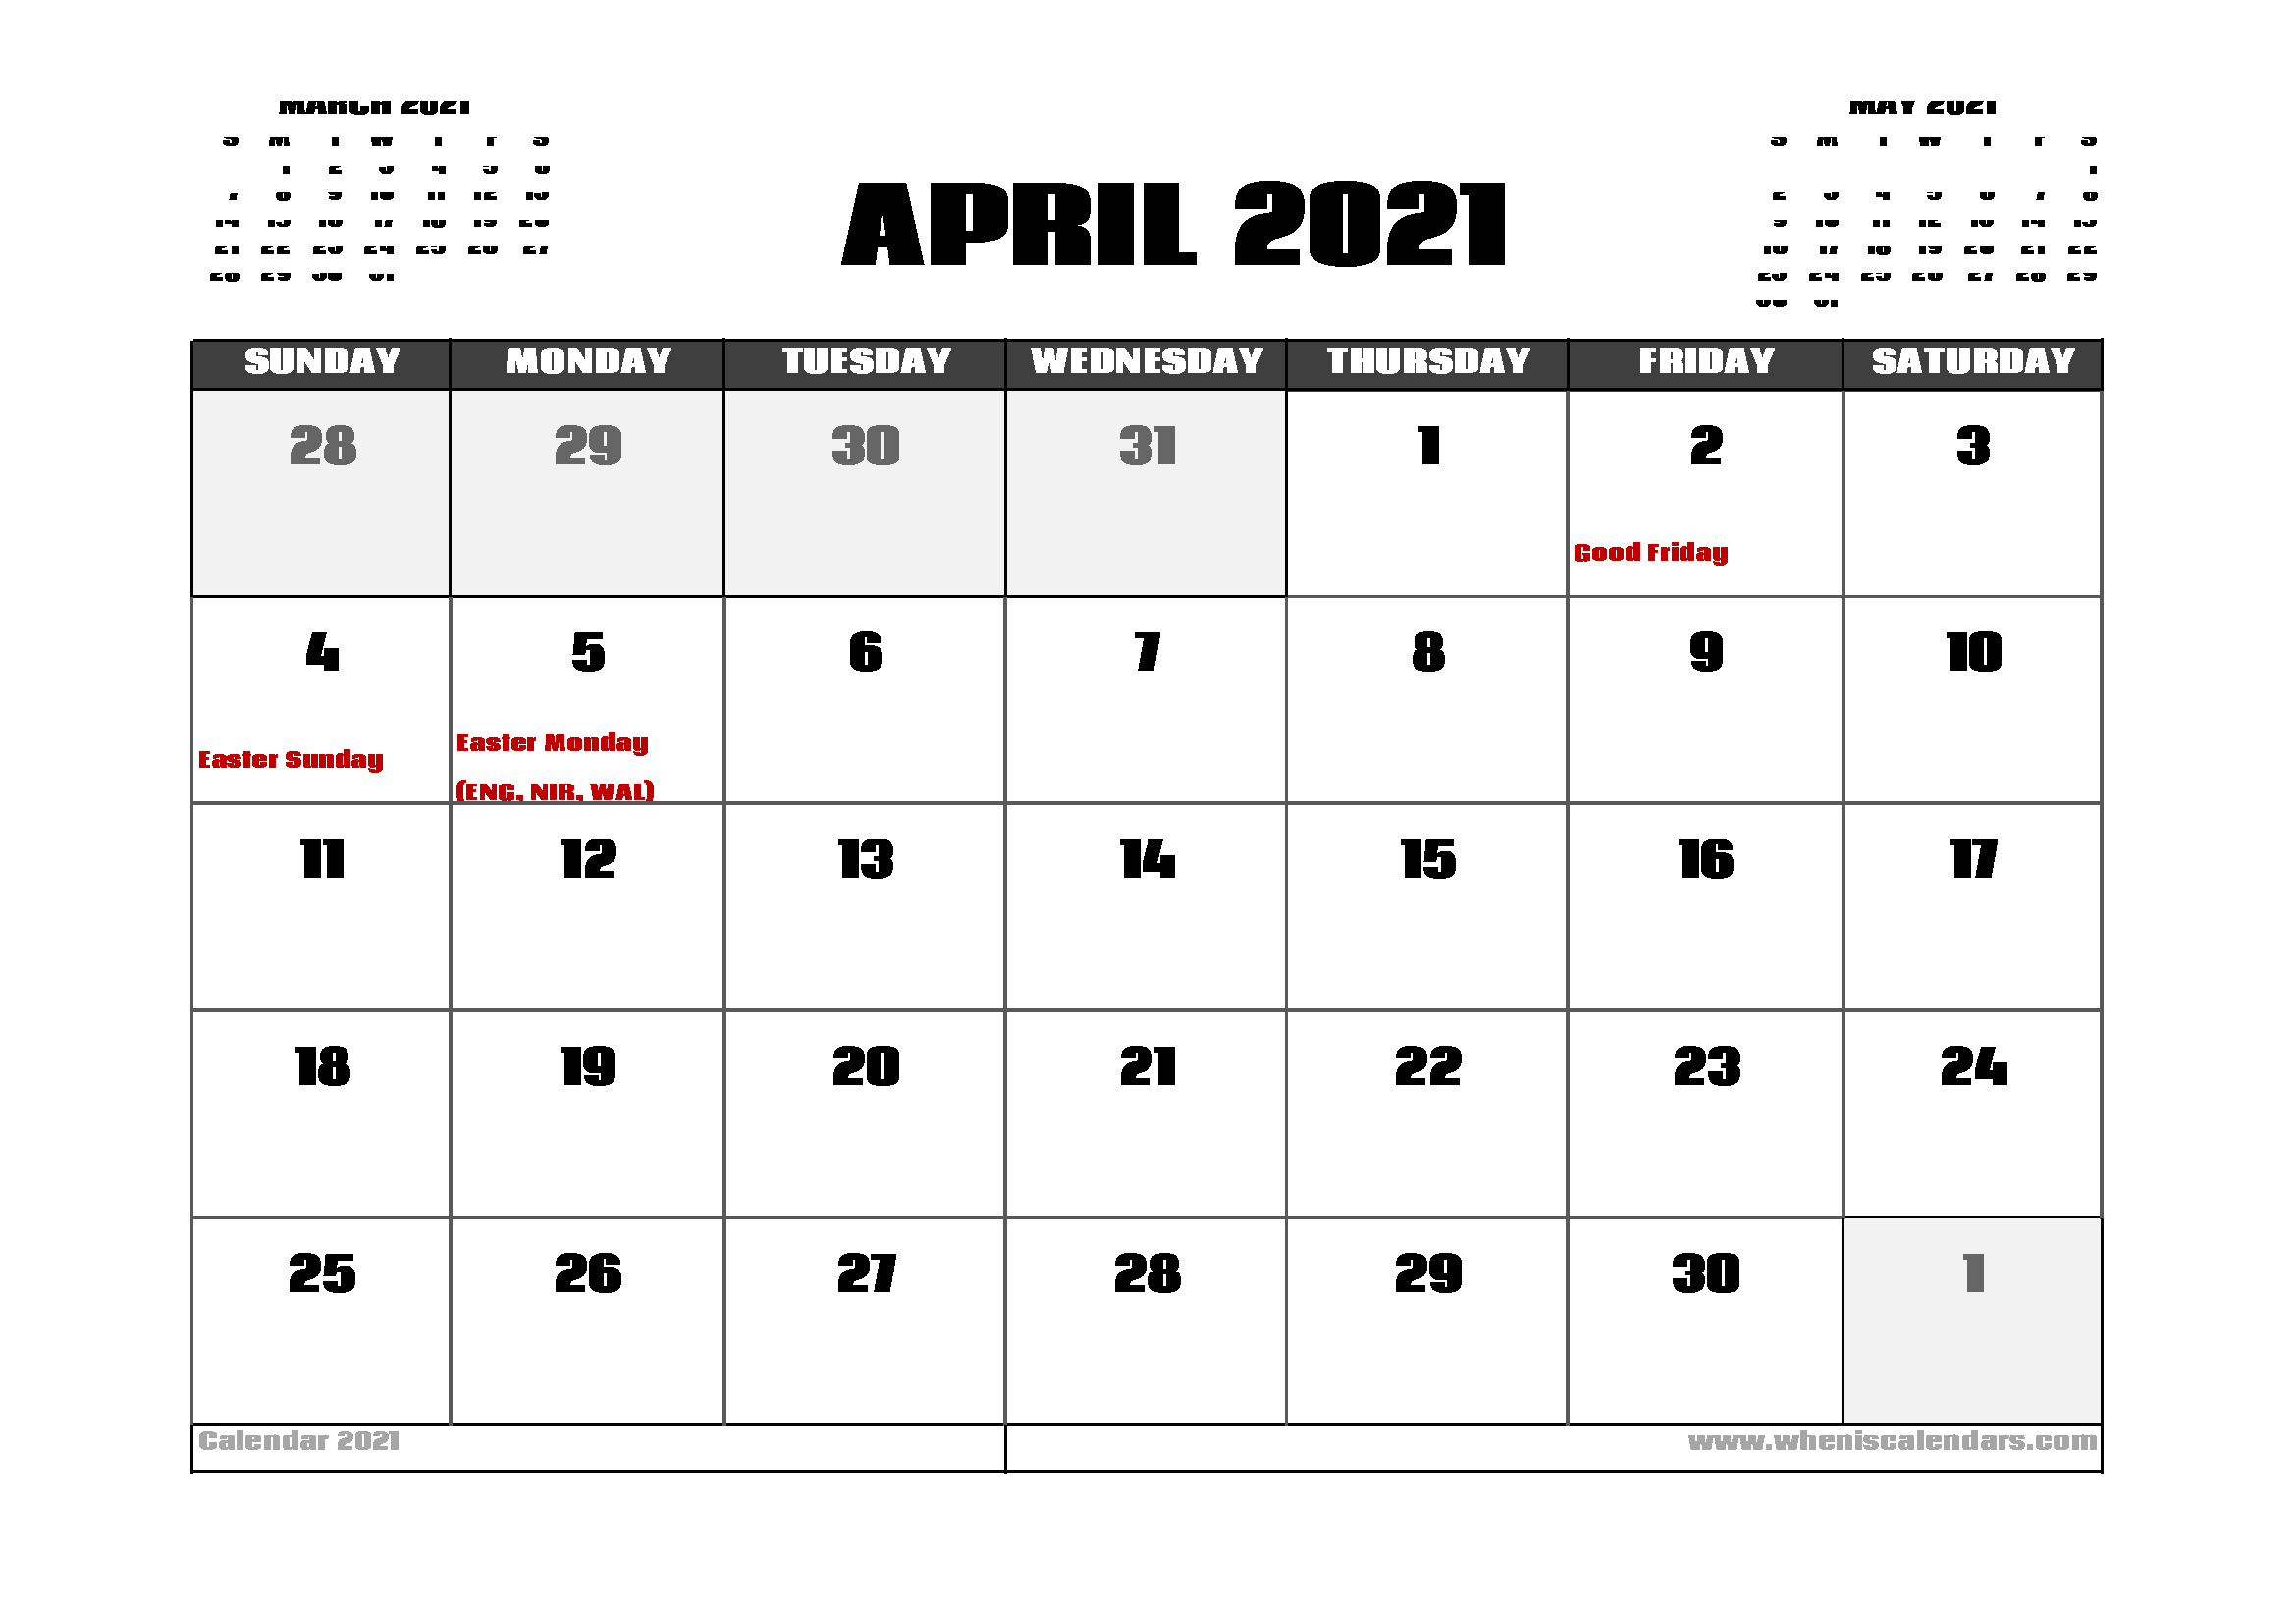 April 2021 Calendar With Holidays April 2021 Calendar UK with Holidays | Calendar printables